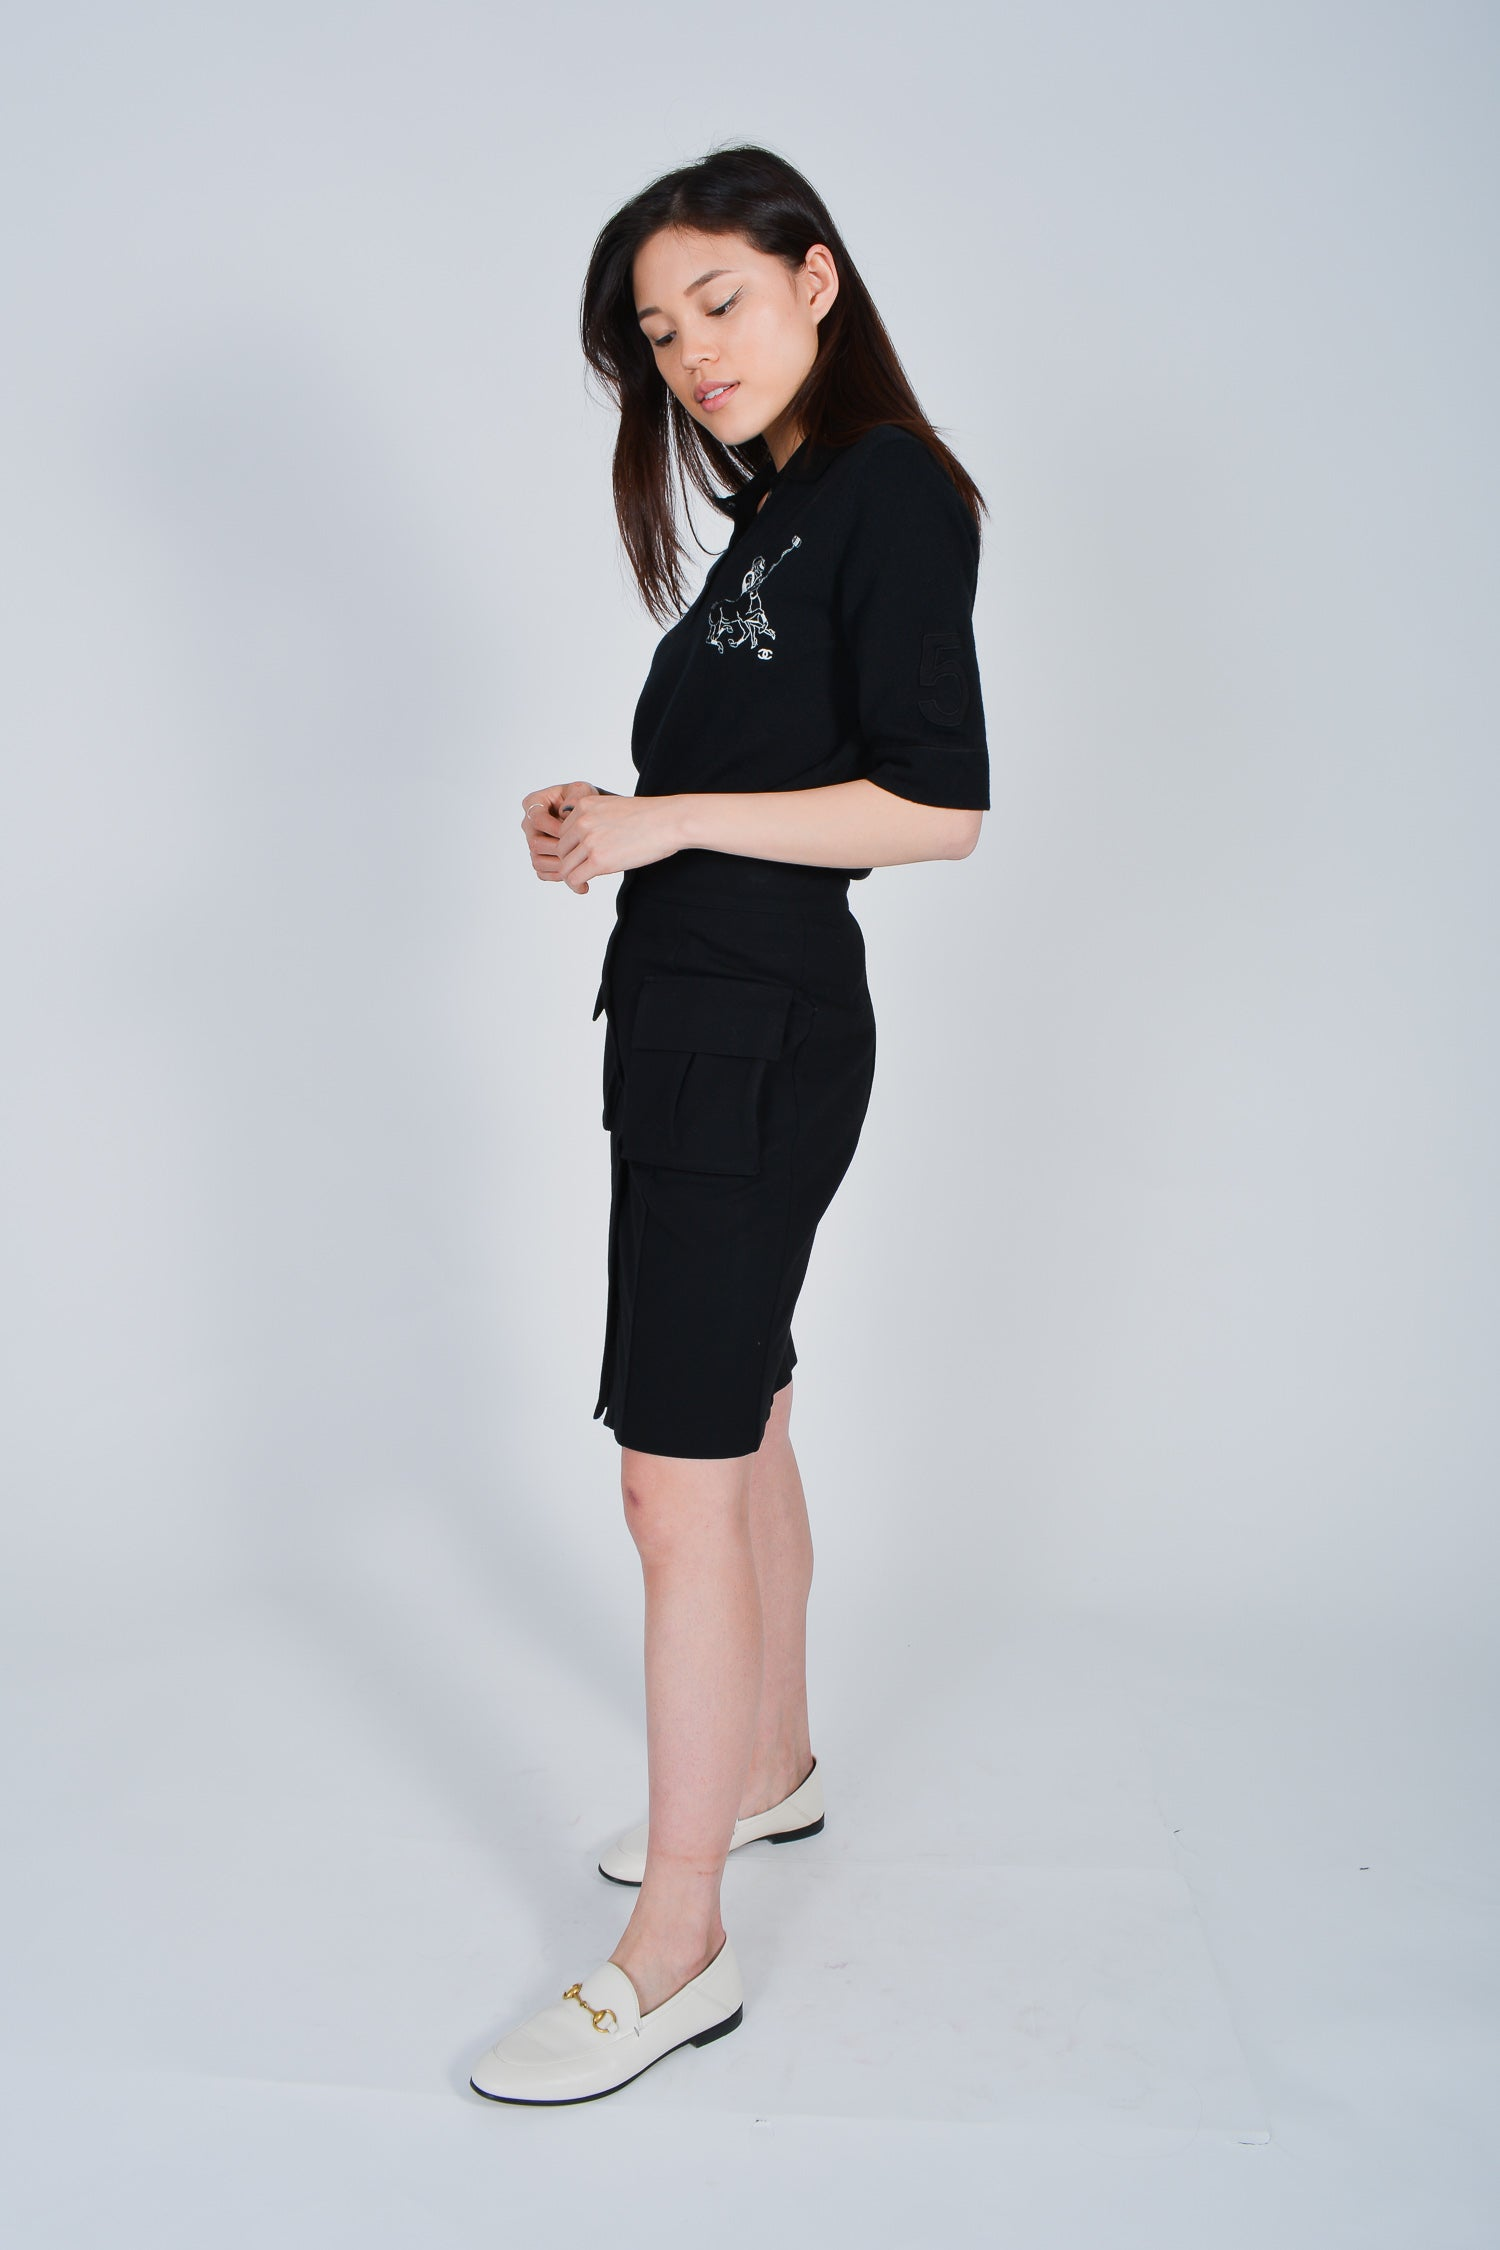 Chanel Black Cashmere Polo with Embroidery